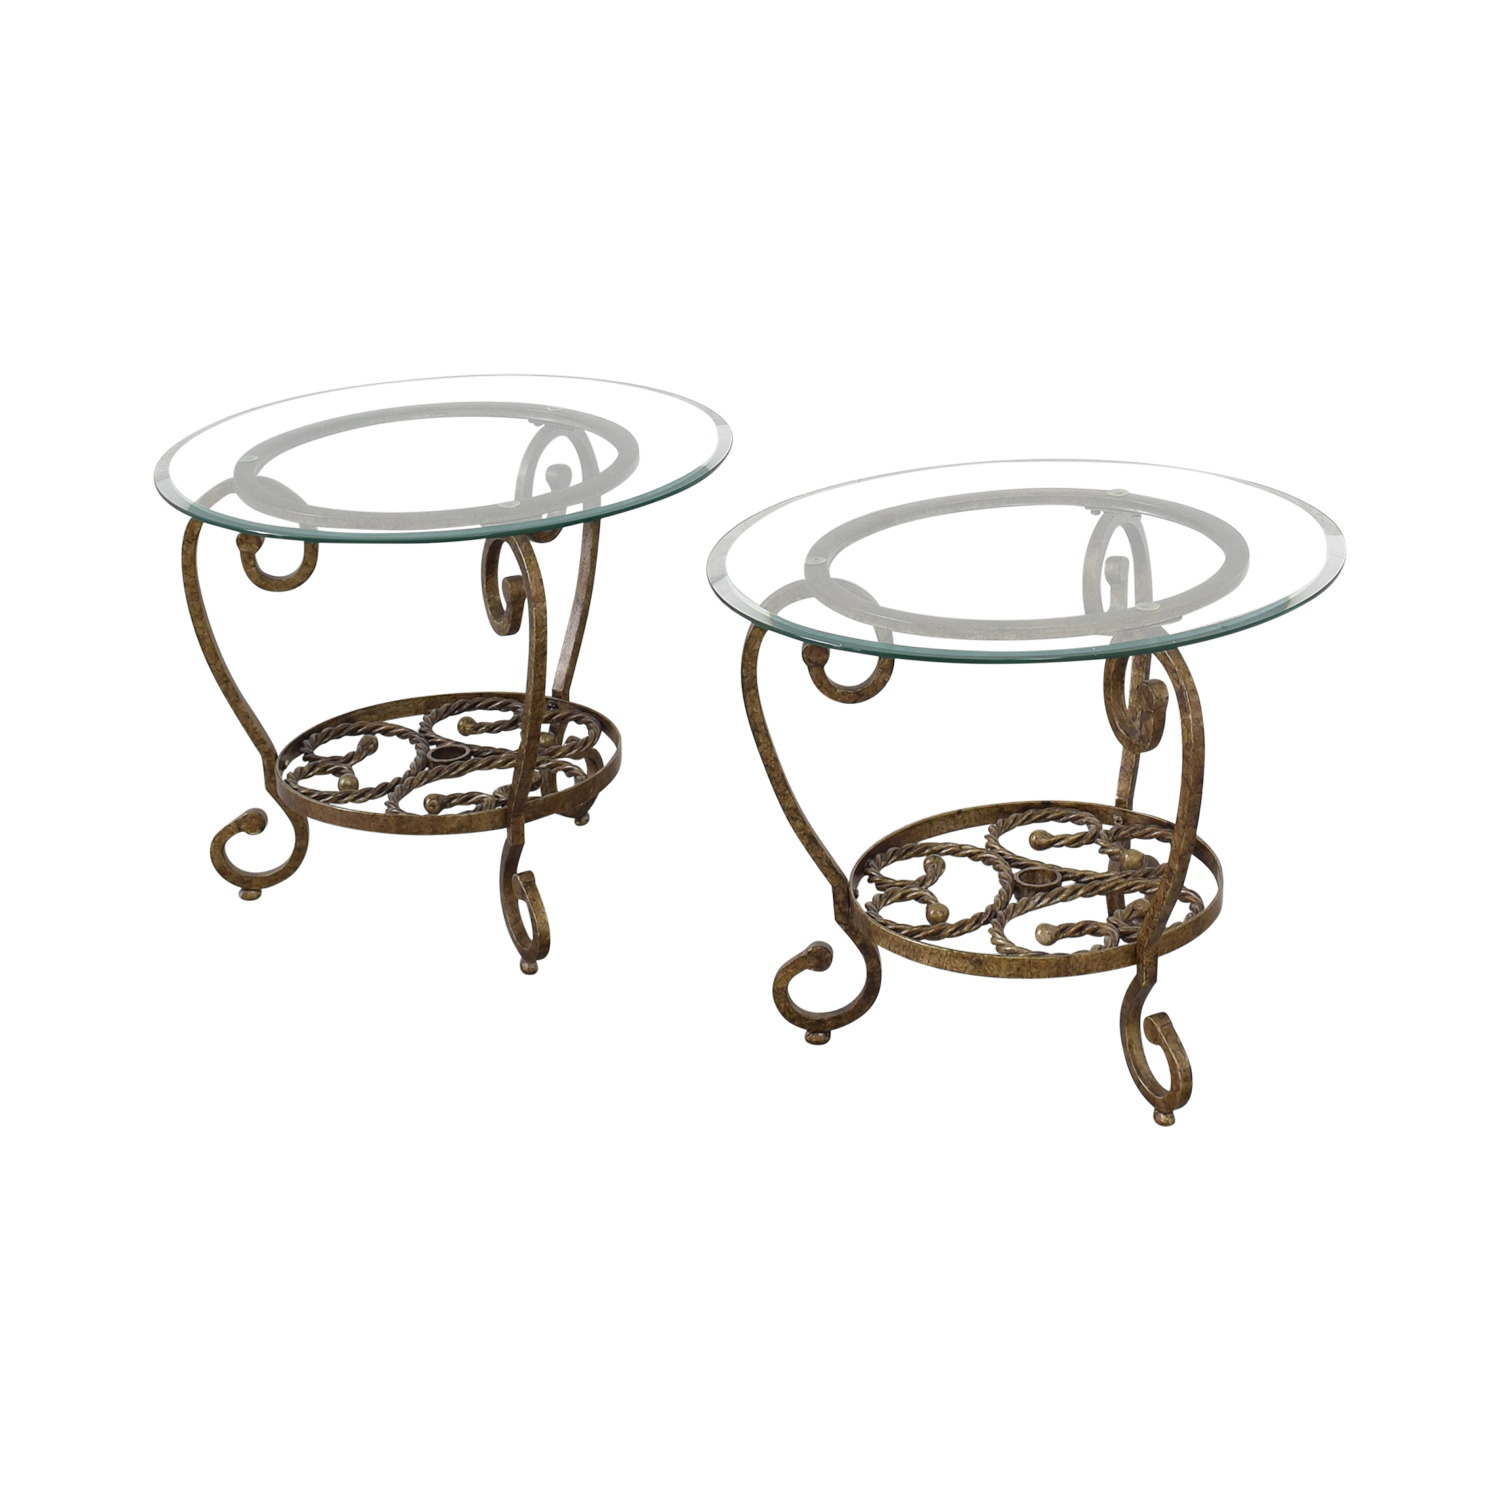 Bassett Furniture Bassett Furniture Glass End Tables nj